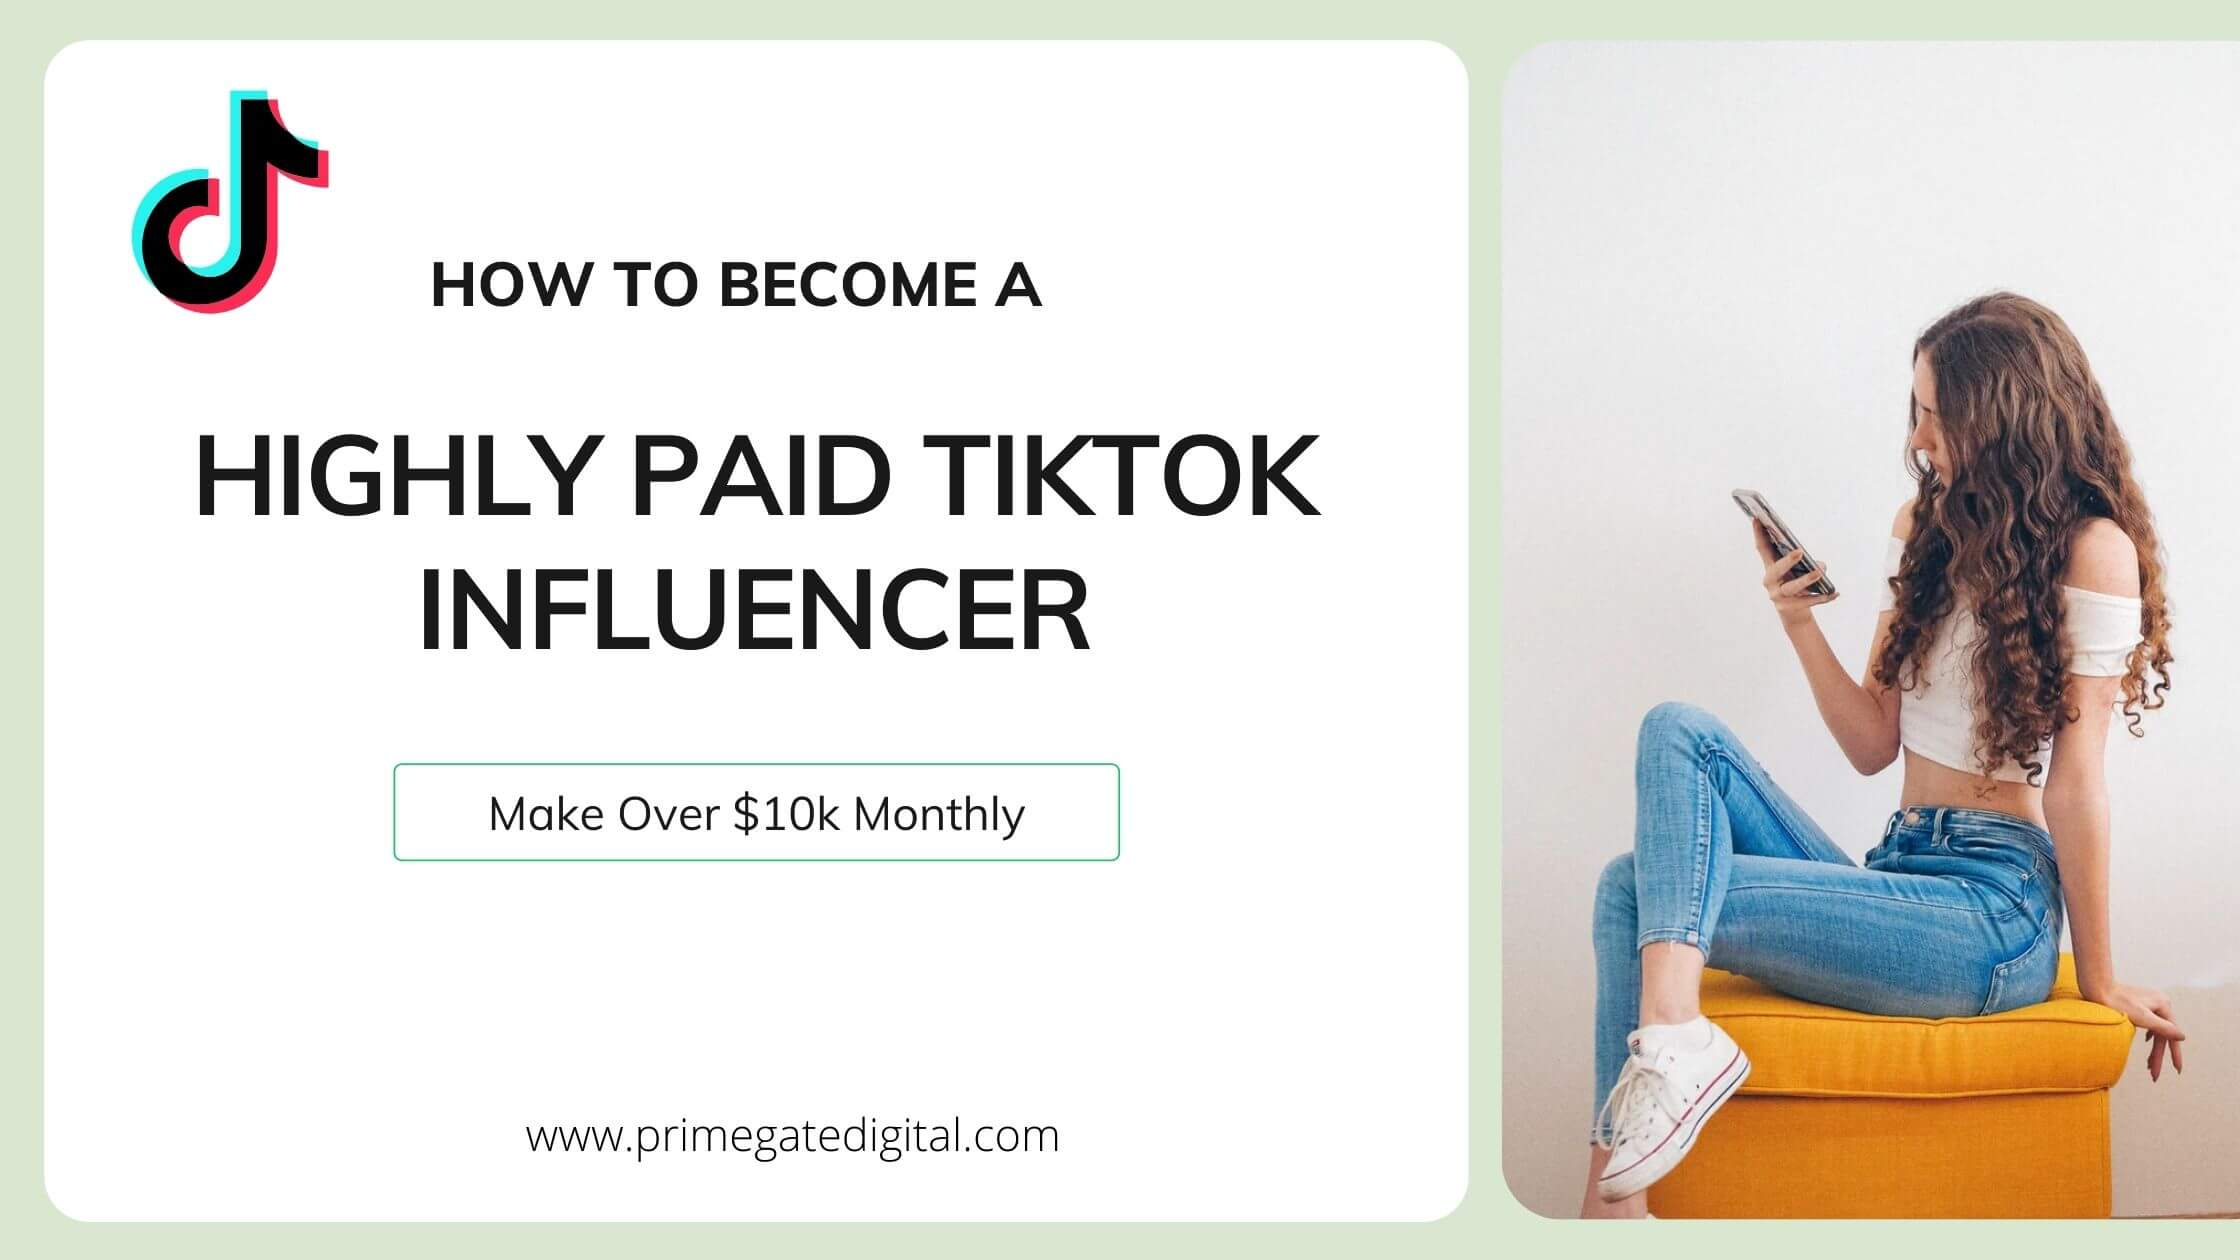 How to become a TikTok Influencer